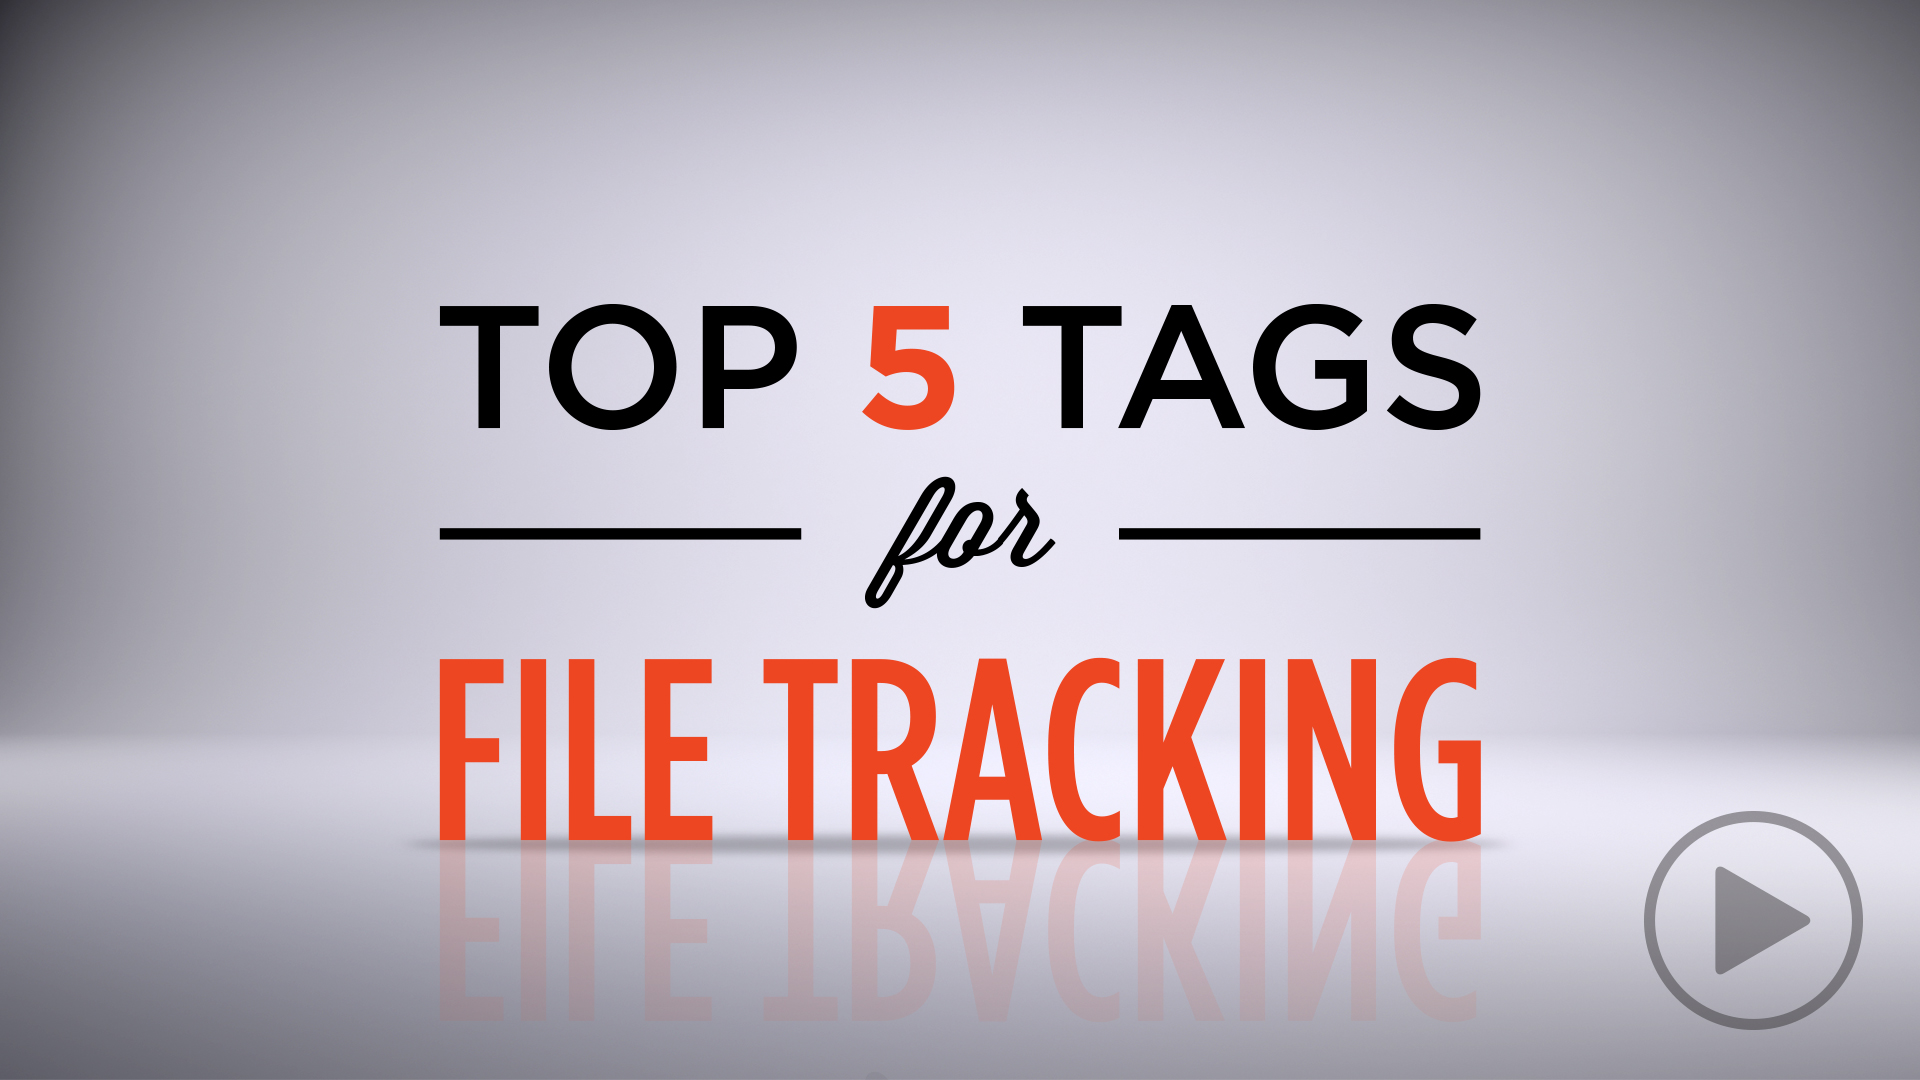 The Top 5 RFID Tags For File Tracking